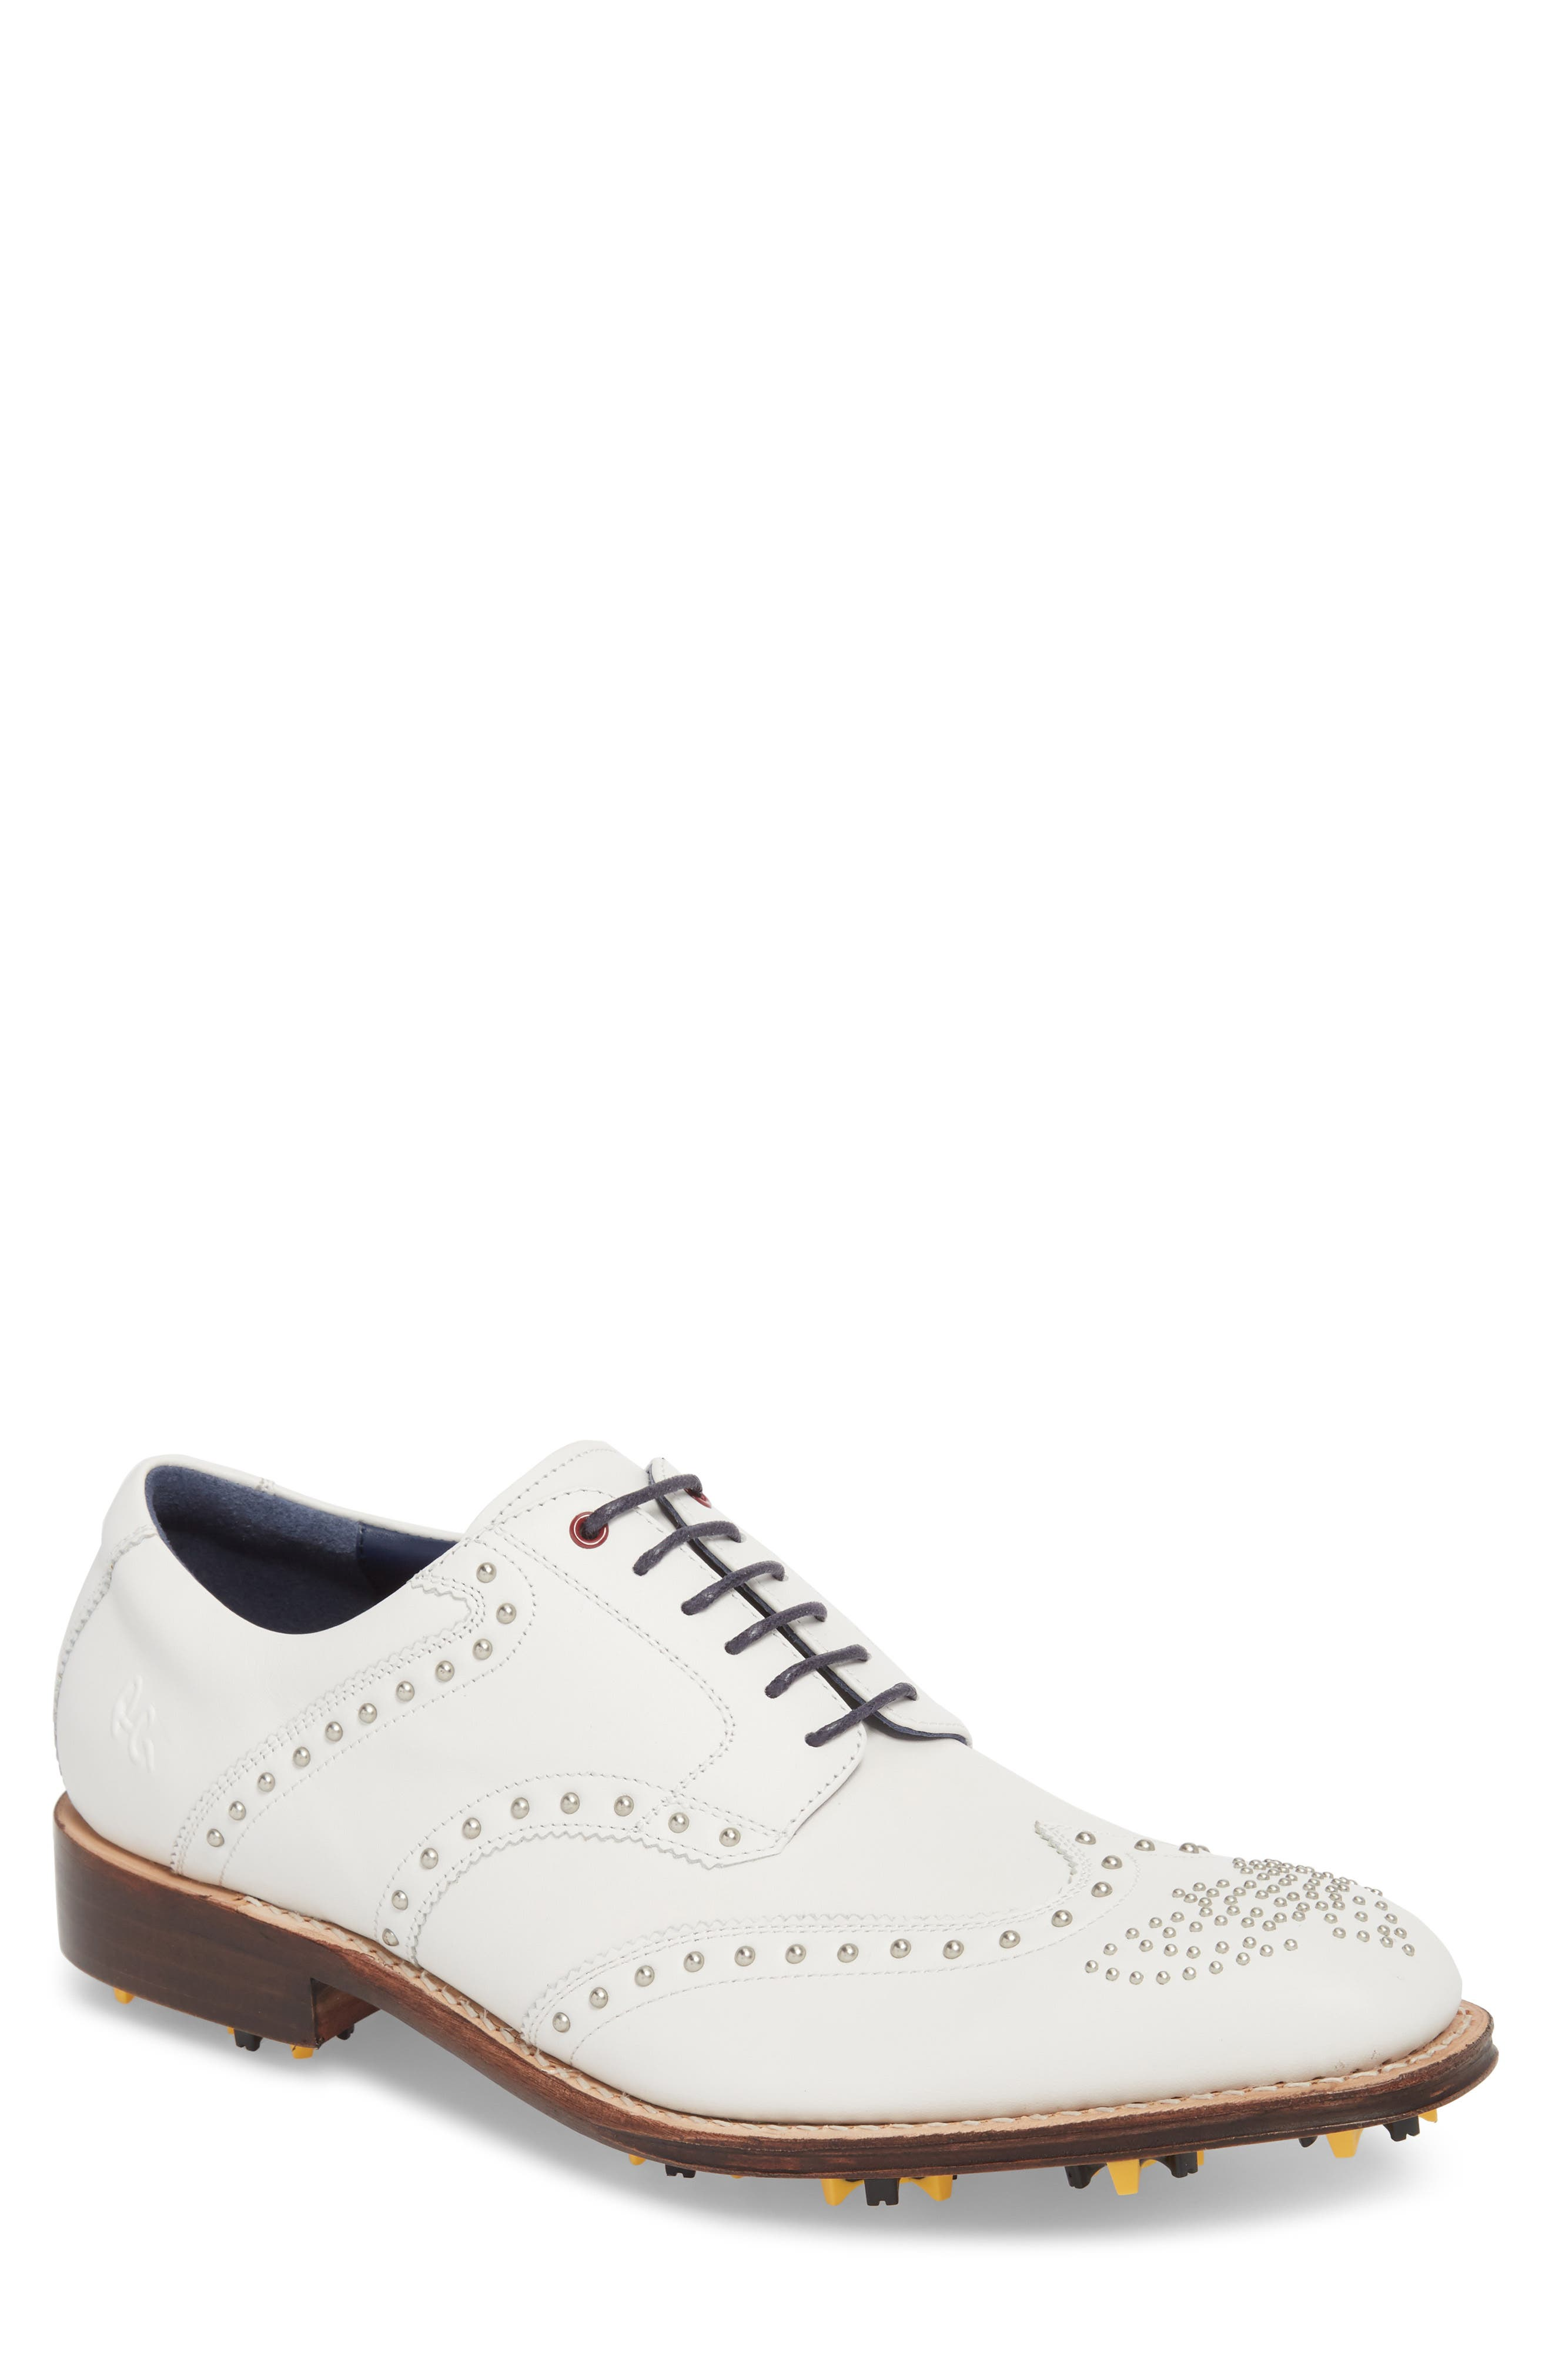 Rocker Plain Toe Oxford with Removable Cleats,                             Main thumbnail 1, color,                             White Leather